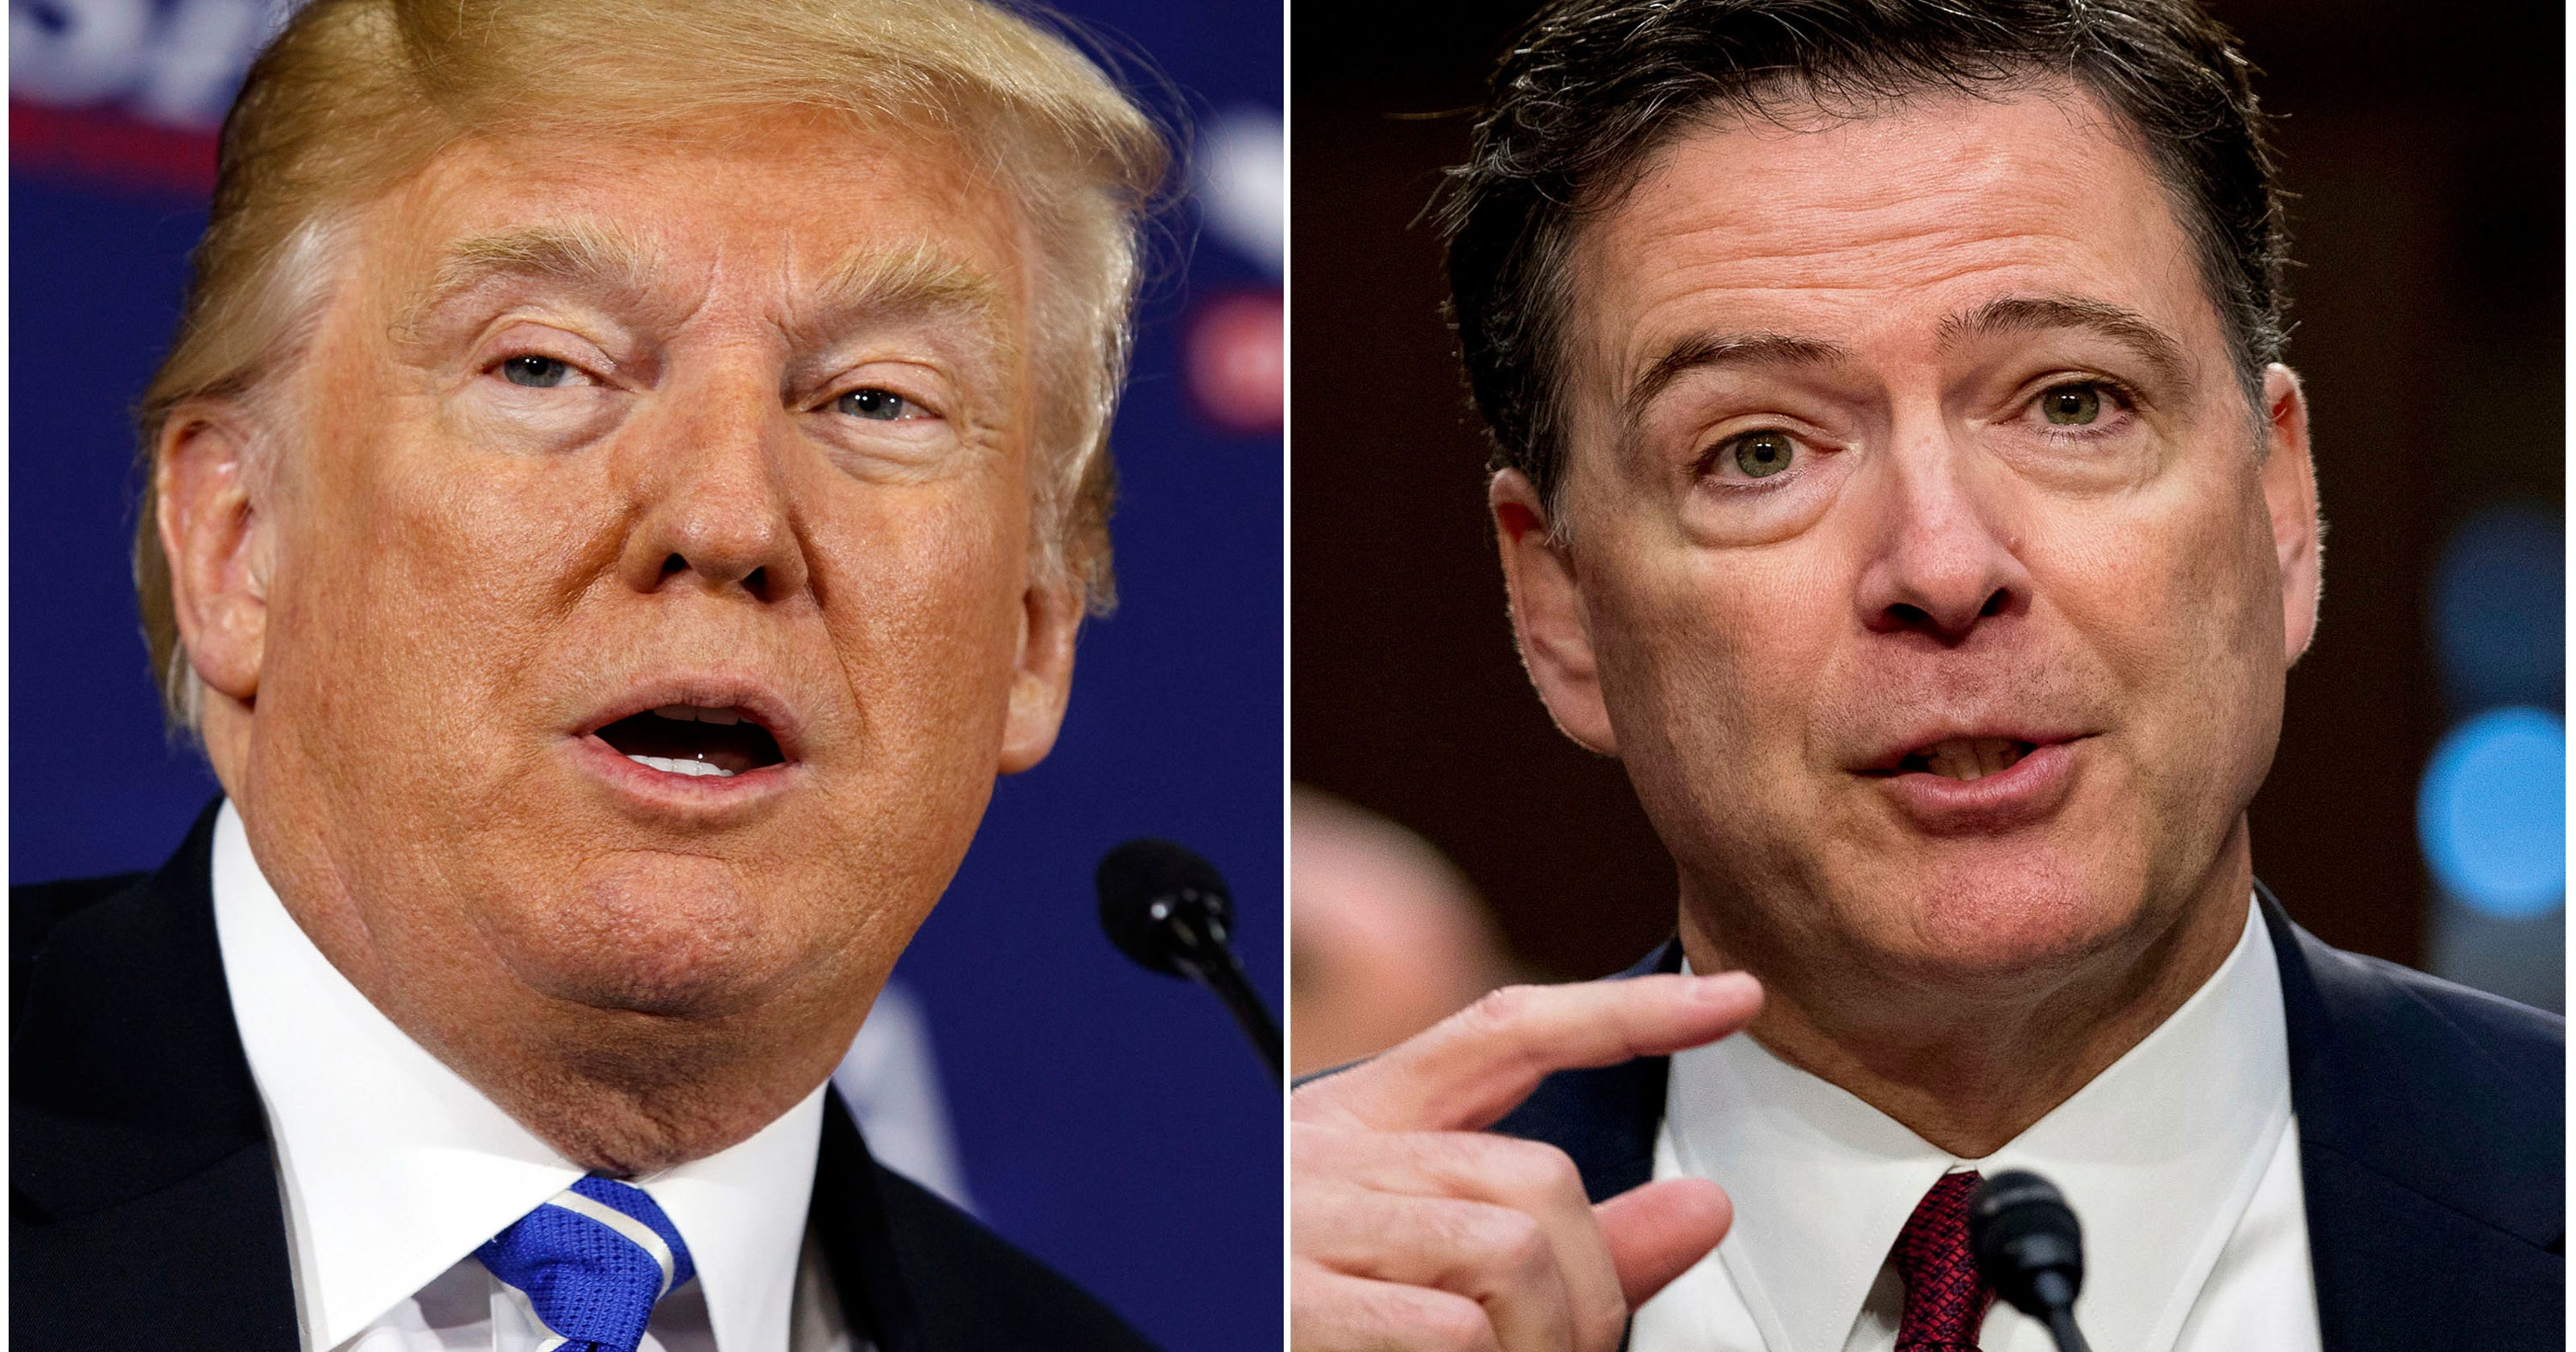 Report rebukes James Comey for handling of Clinton email case